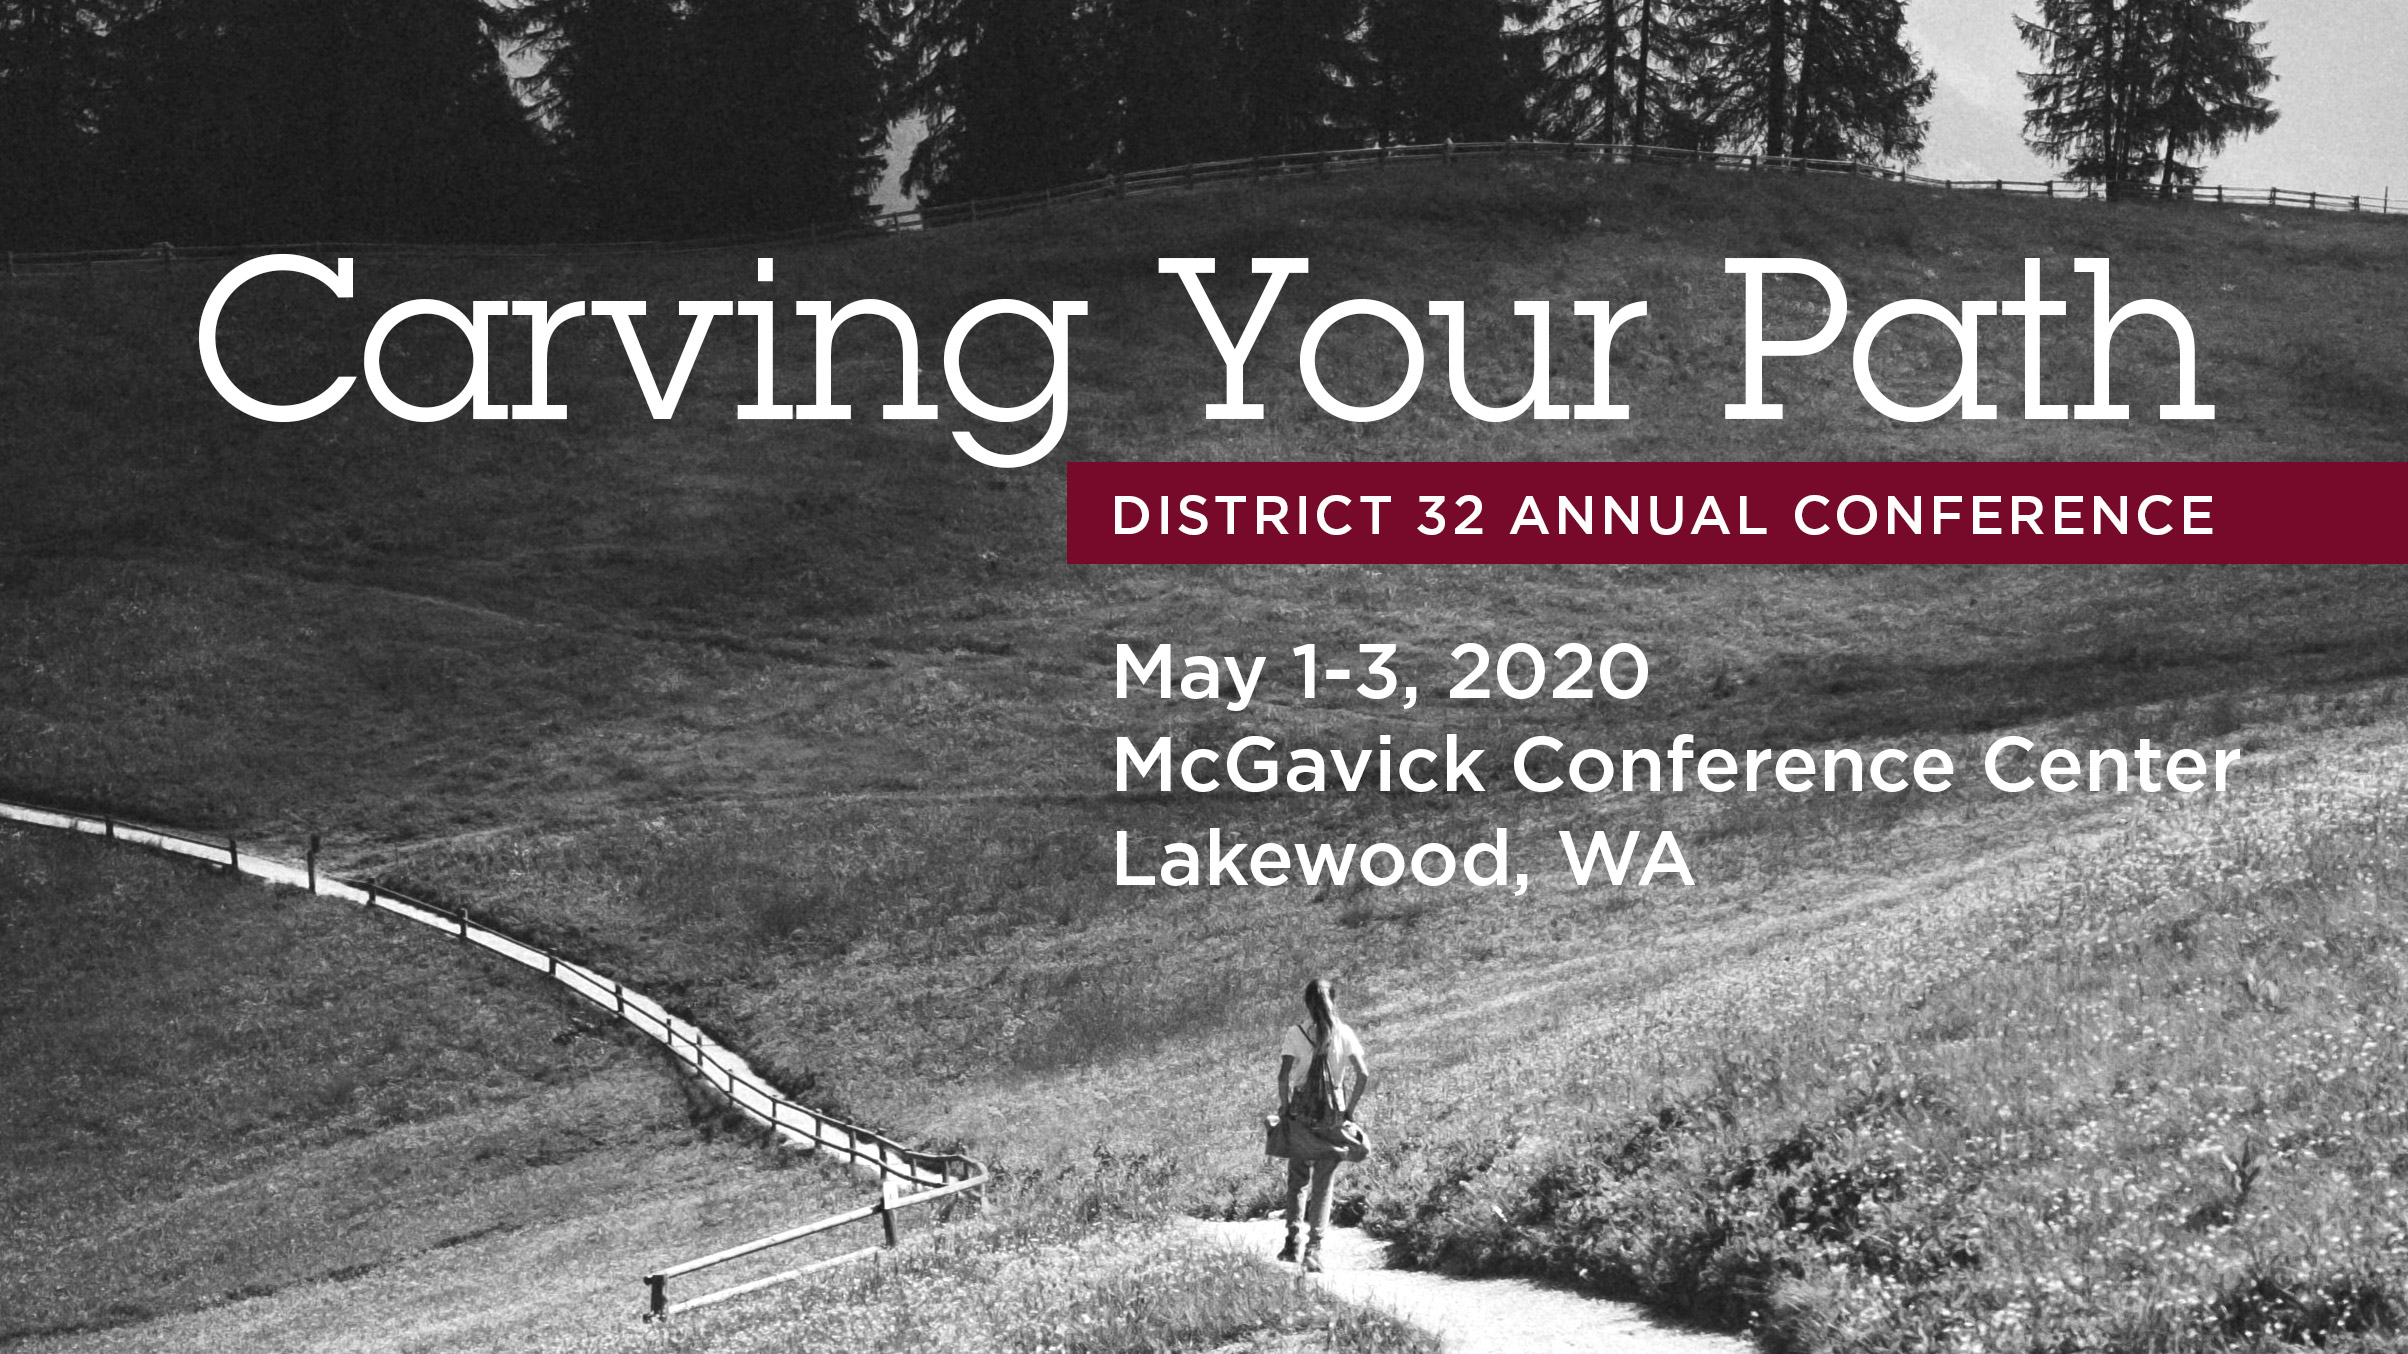 DISTRICT 32 ANNUAL CONFERENCE CALL FOR PRESENTERS